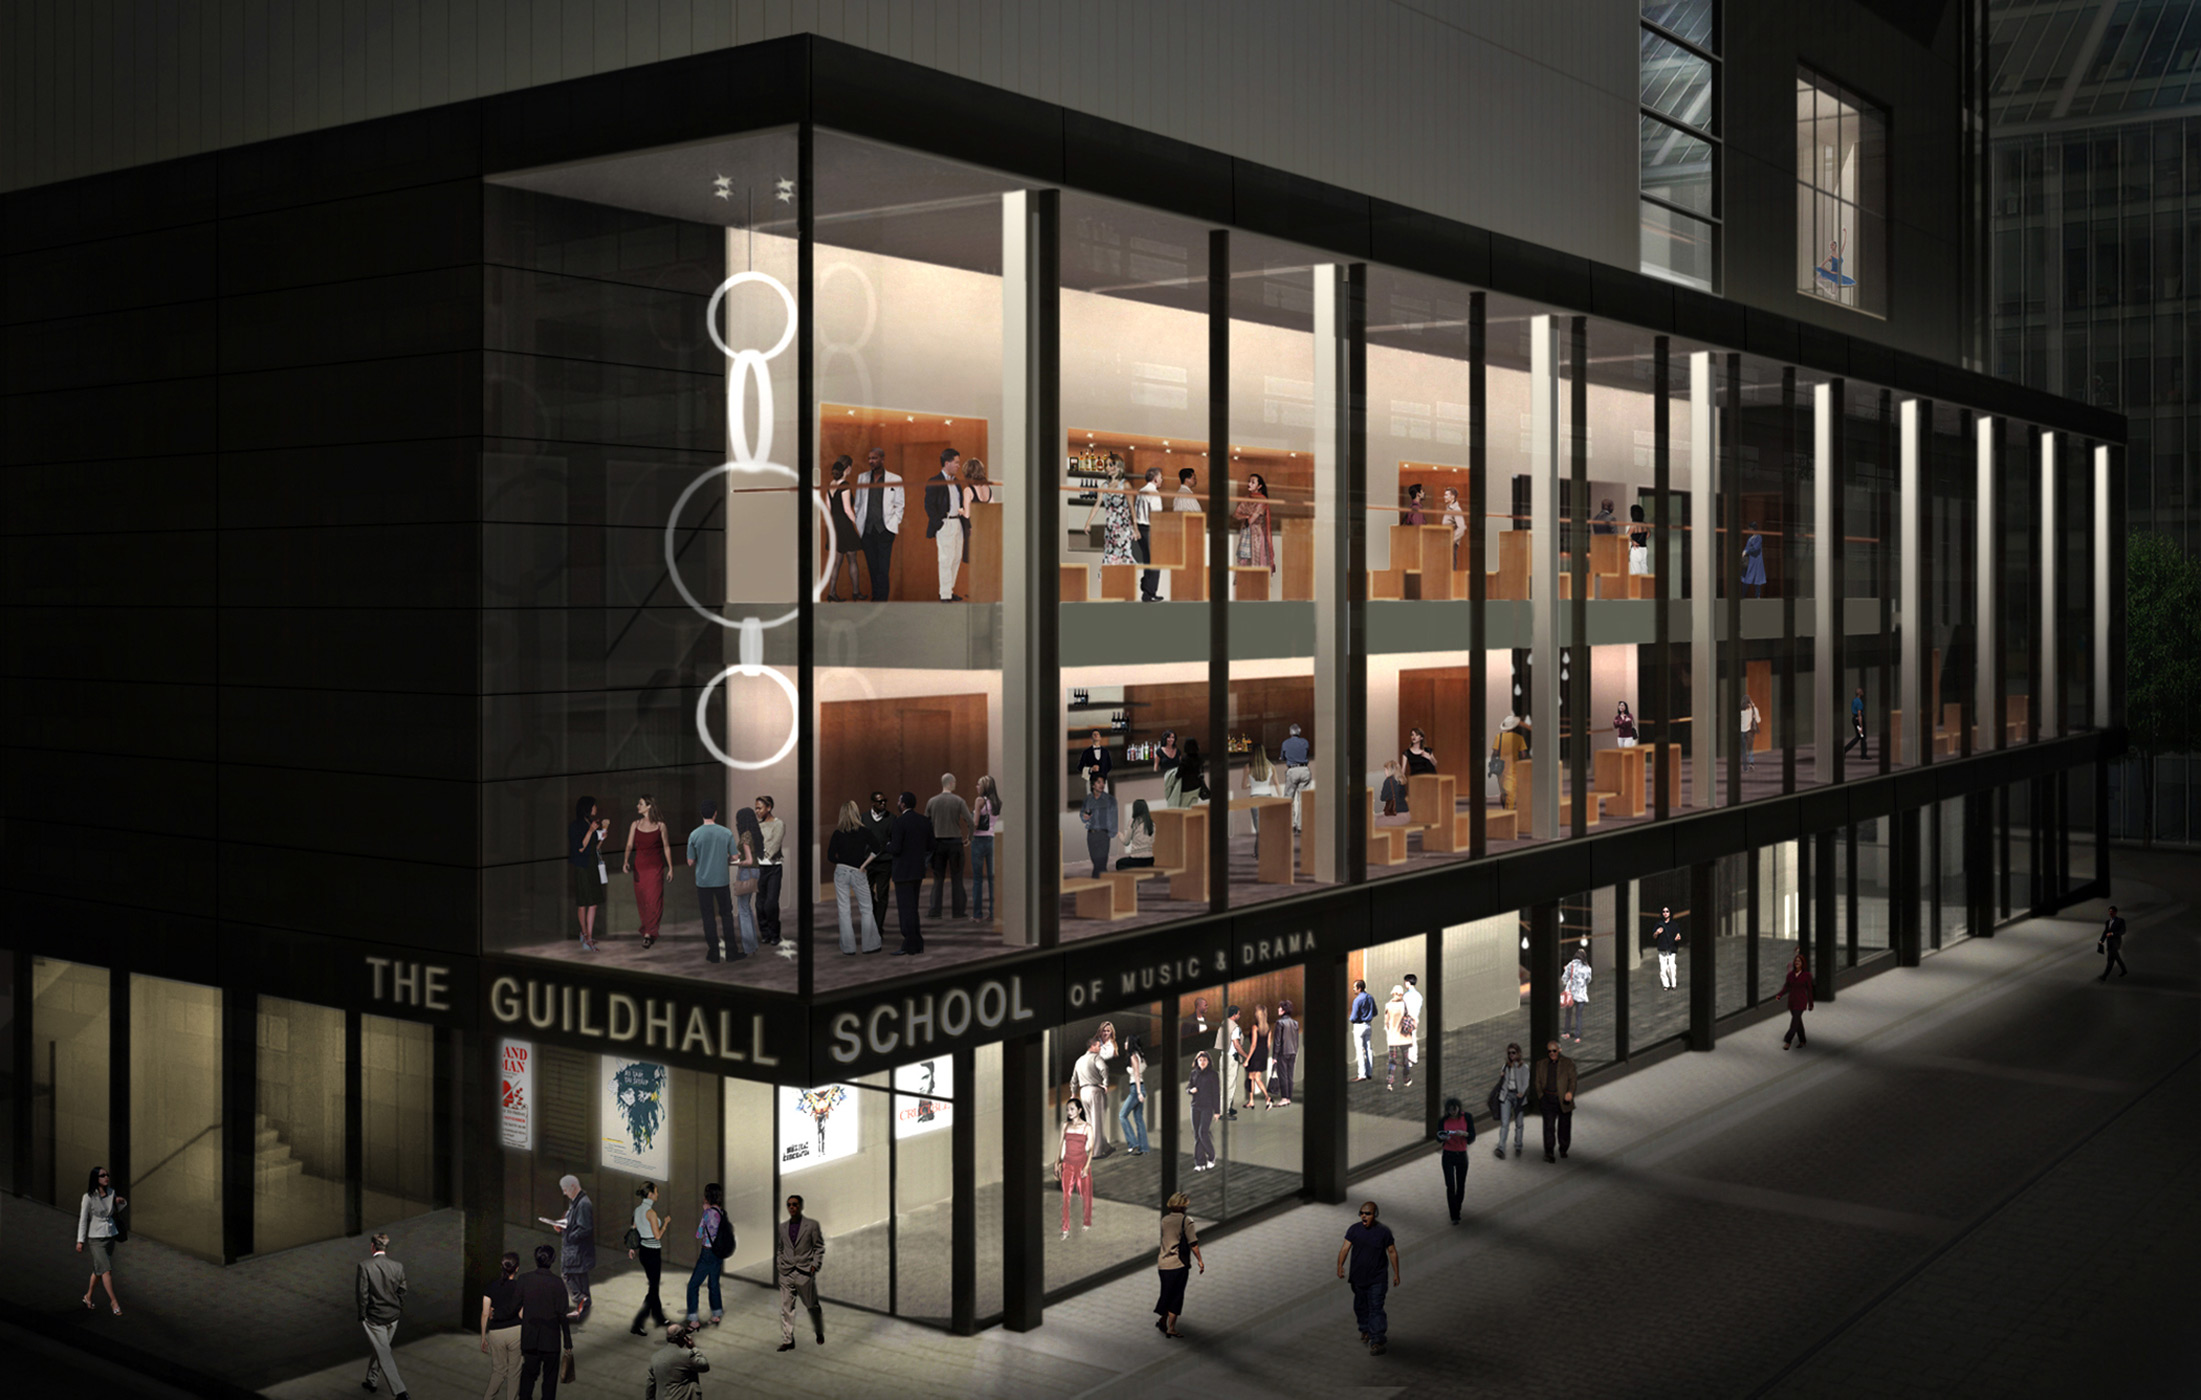 Guildhall School of Music - CGI